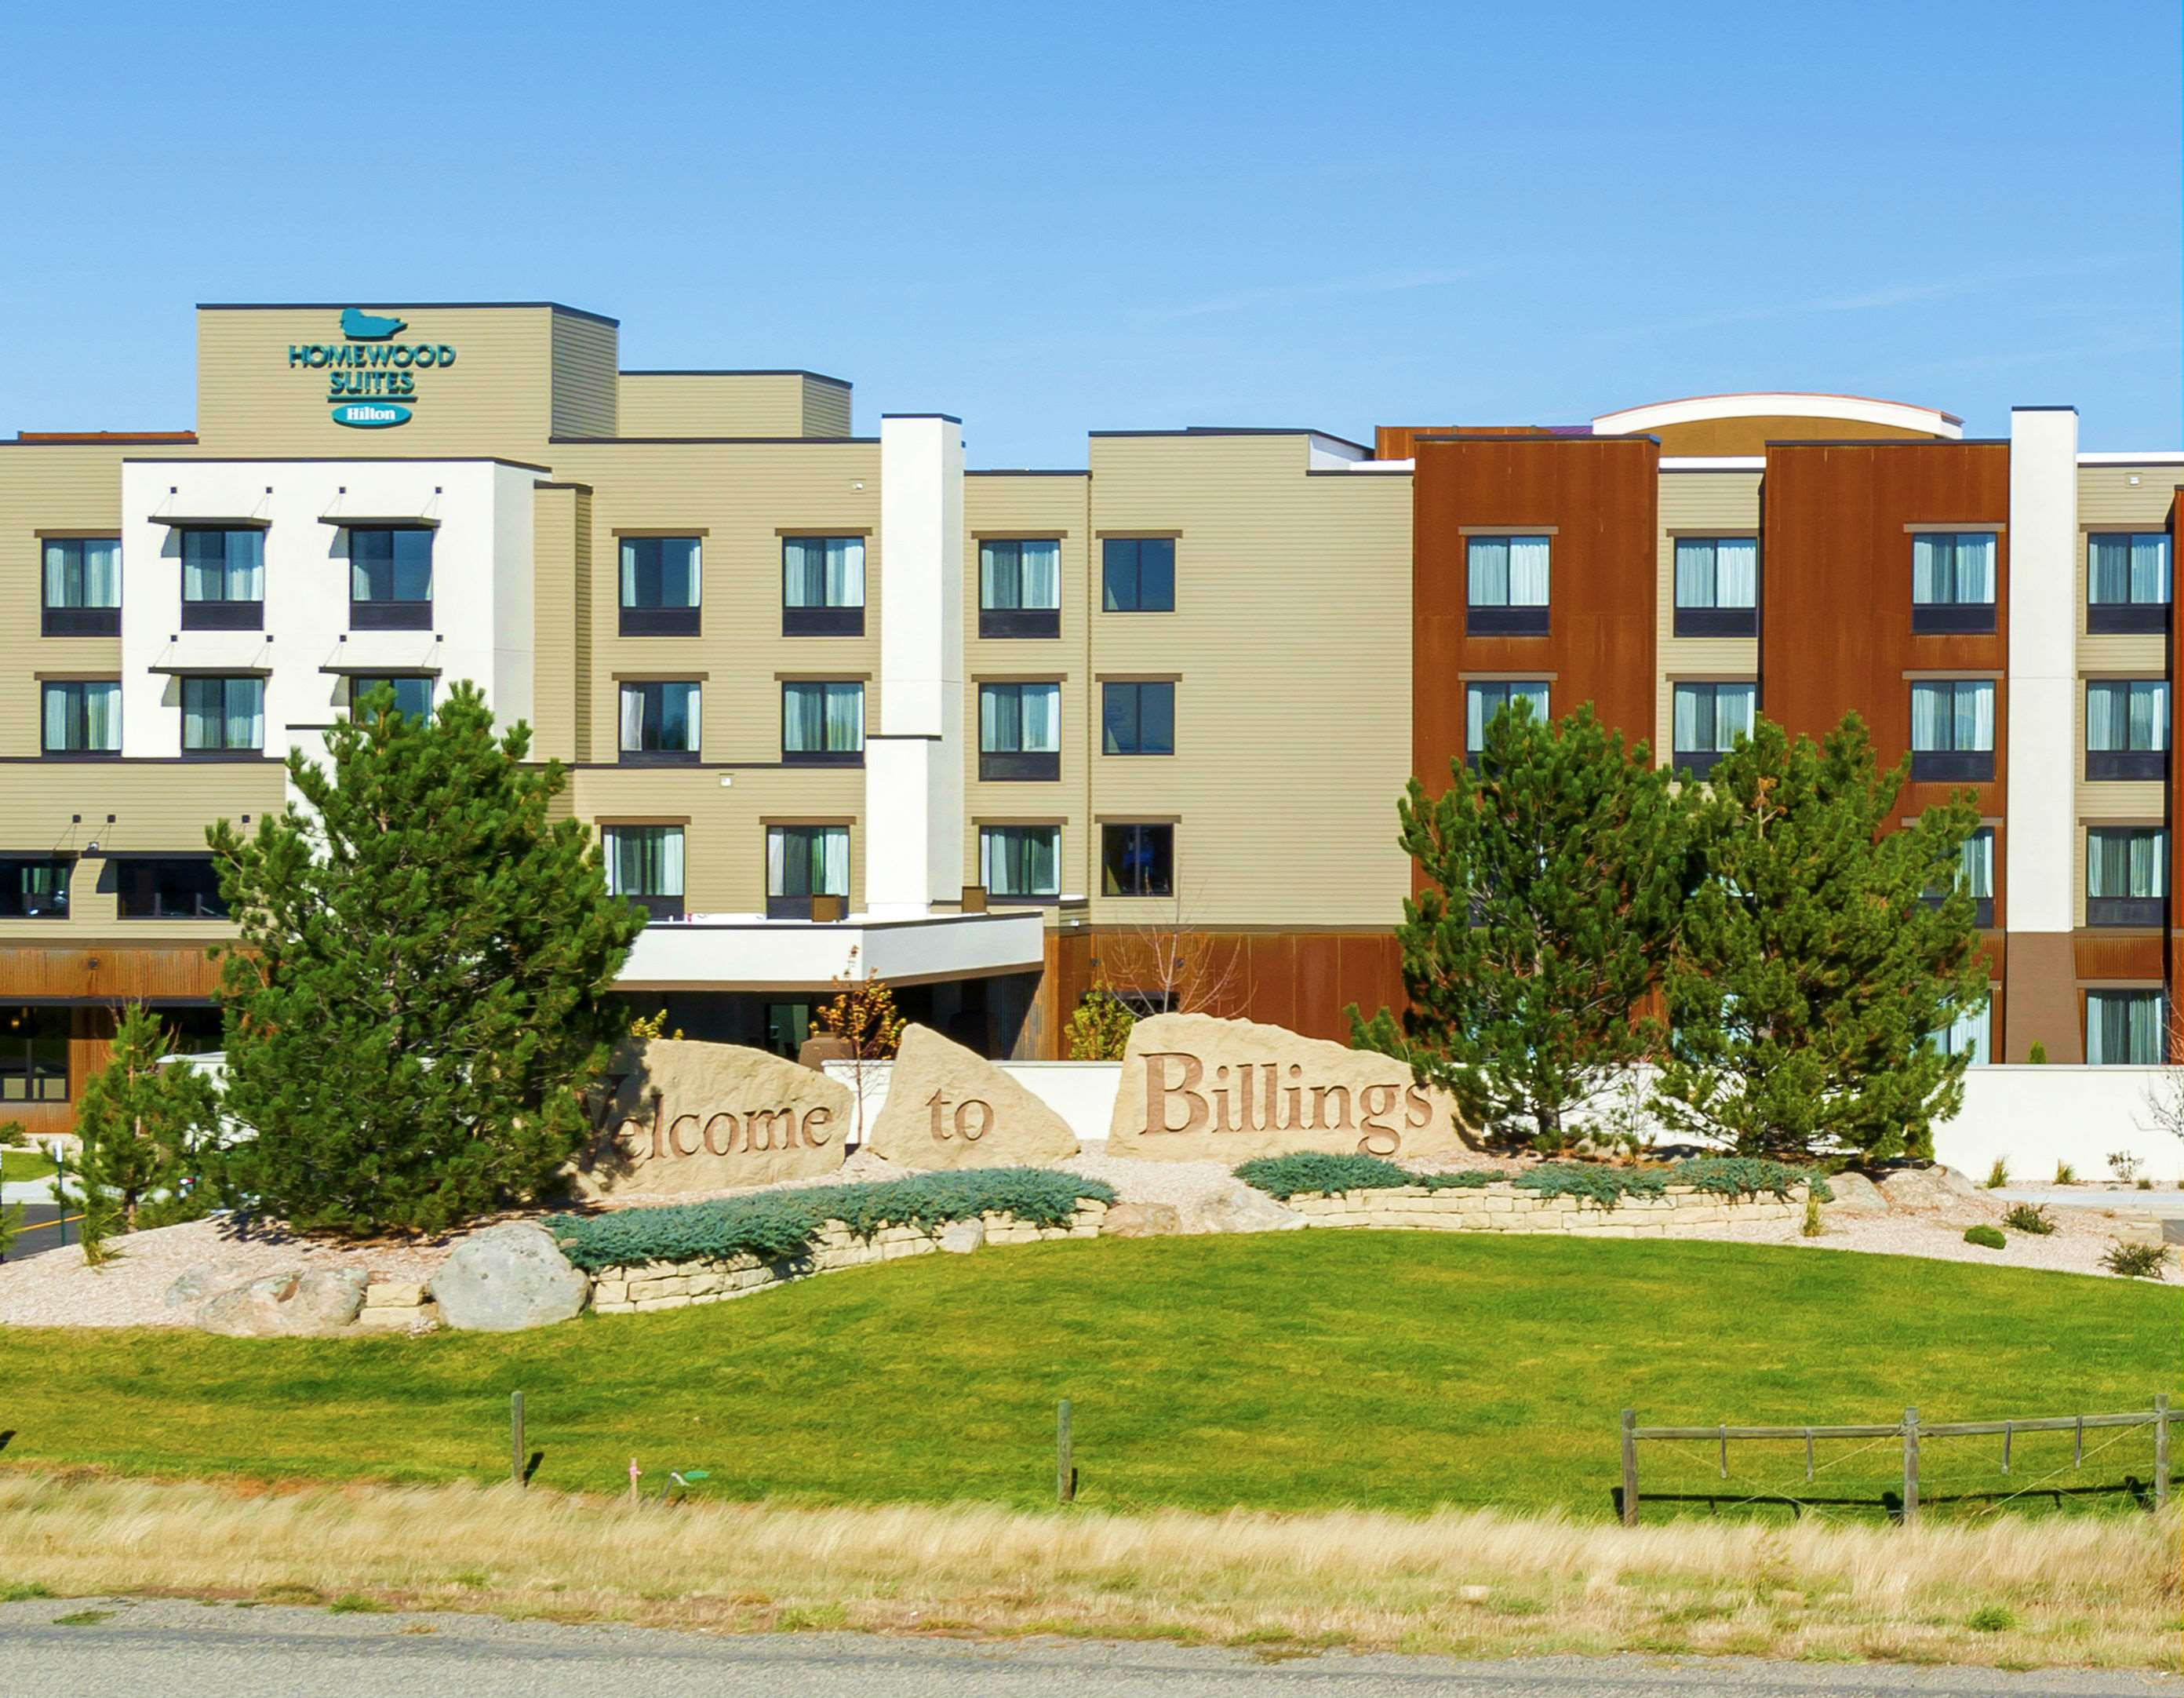 Hotels And Motels In Billings Montana